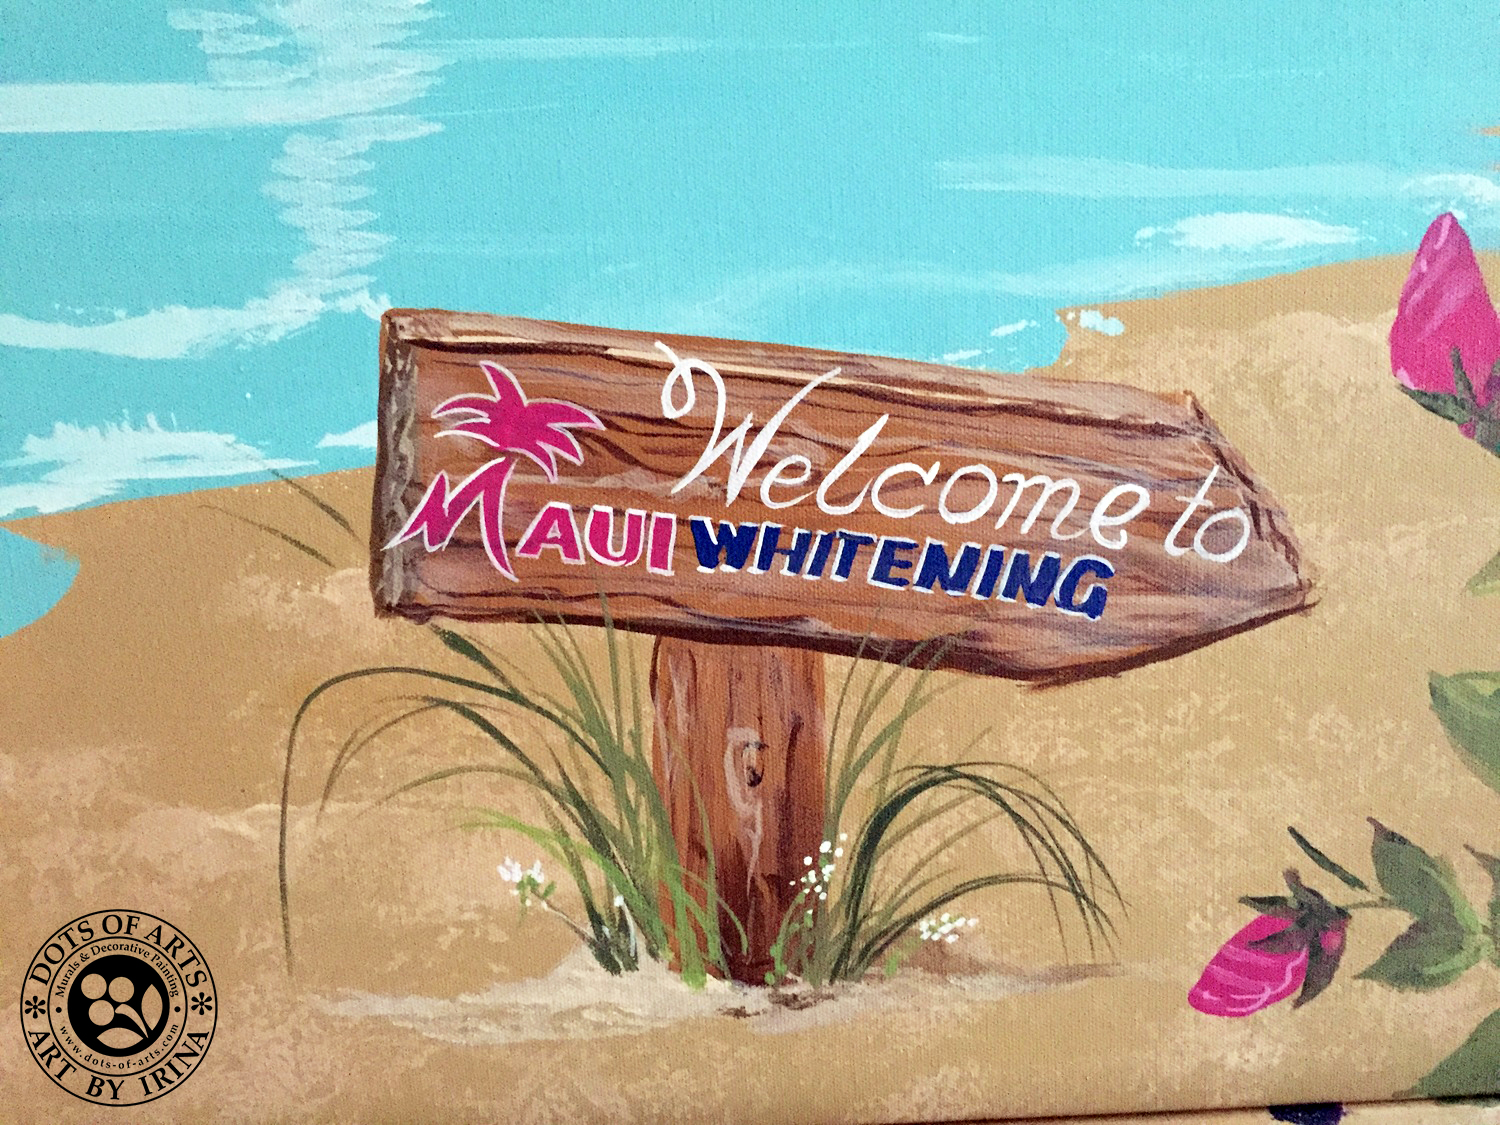 decorative-painting-canvases-custom-dots-of-arts-maui-whitening-sign.jpg